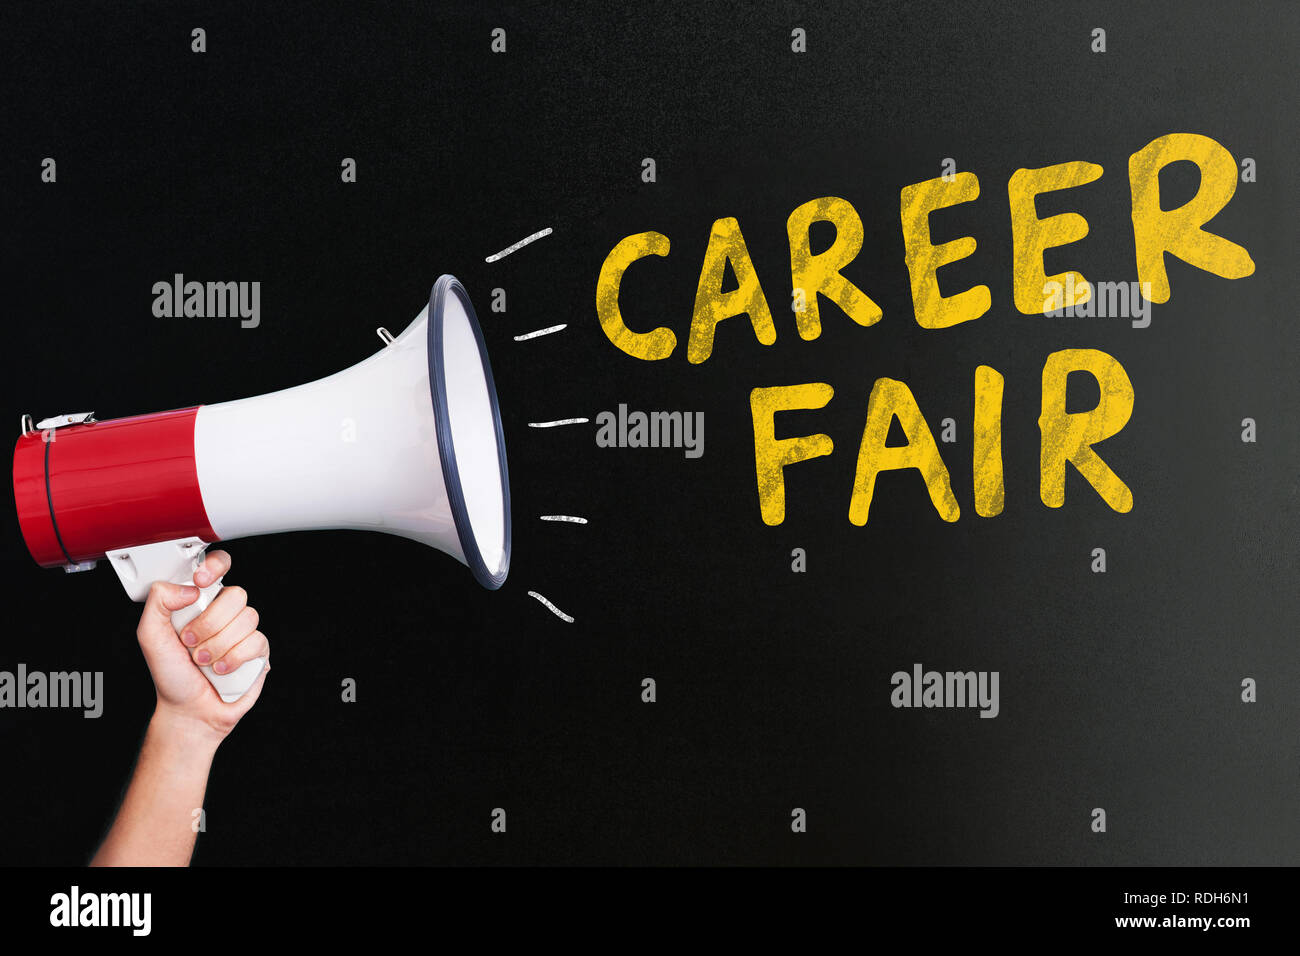 A Person's Hand Holding Megaphone Near Yellow Career Fair Text On Black Backdrop - Stock Image